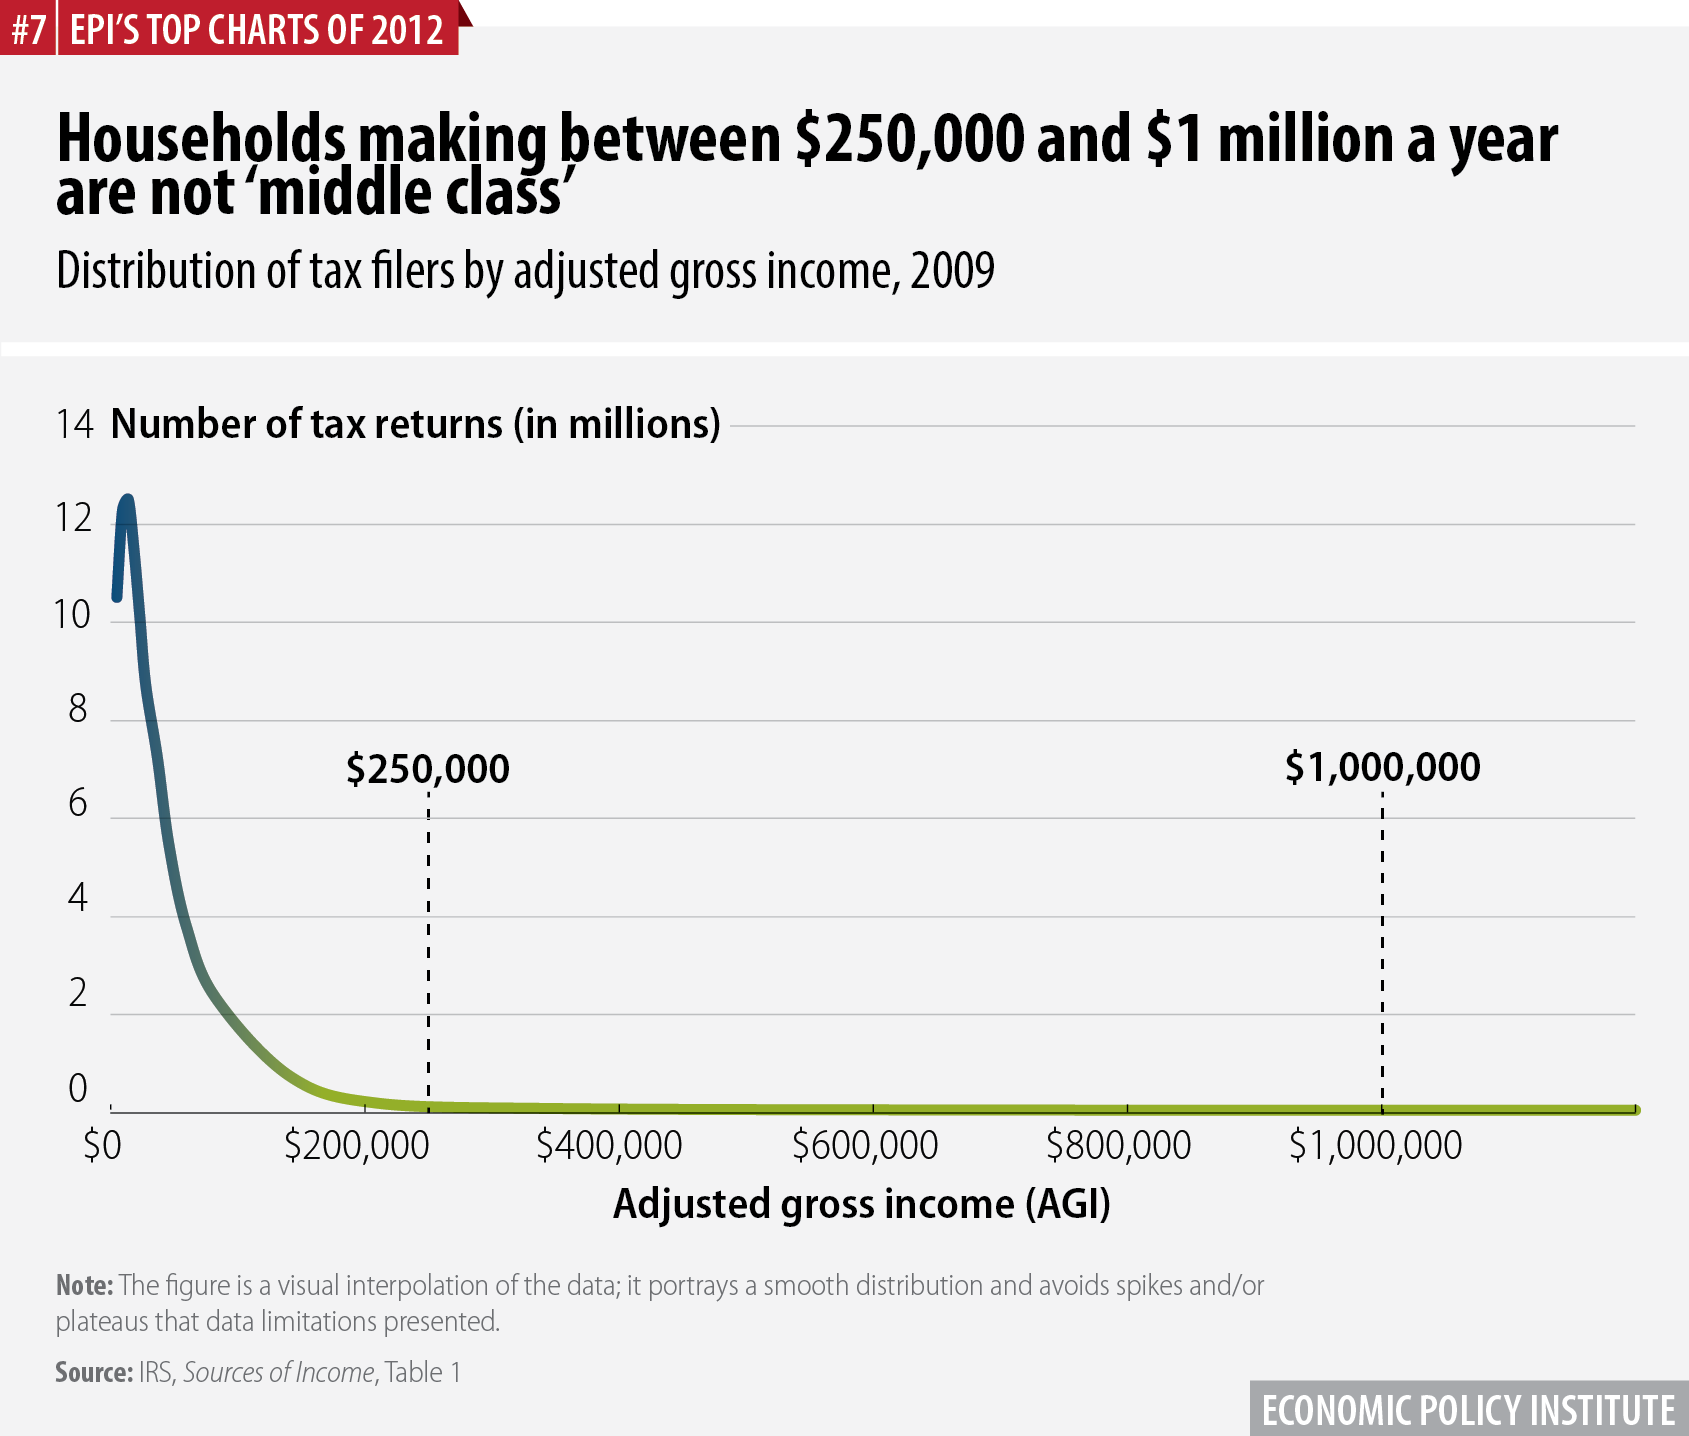 Households making between $250,000 and $1 million a year are not 'middle class' | Distribution of tax filers by adjusted gross income, 2009